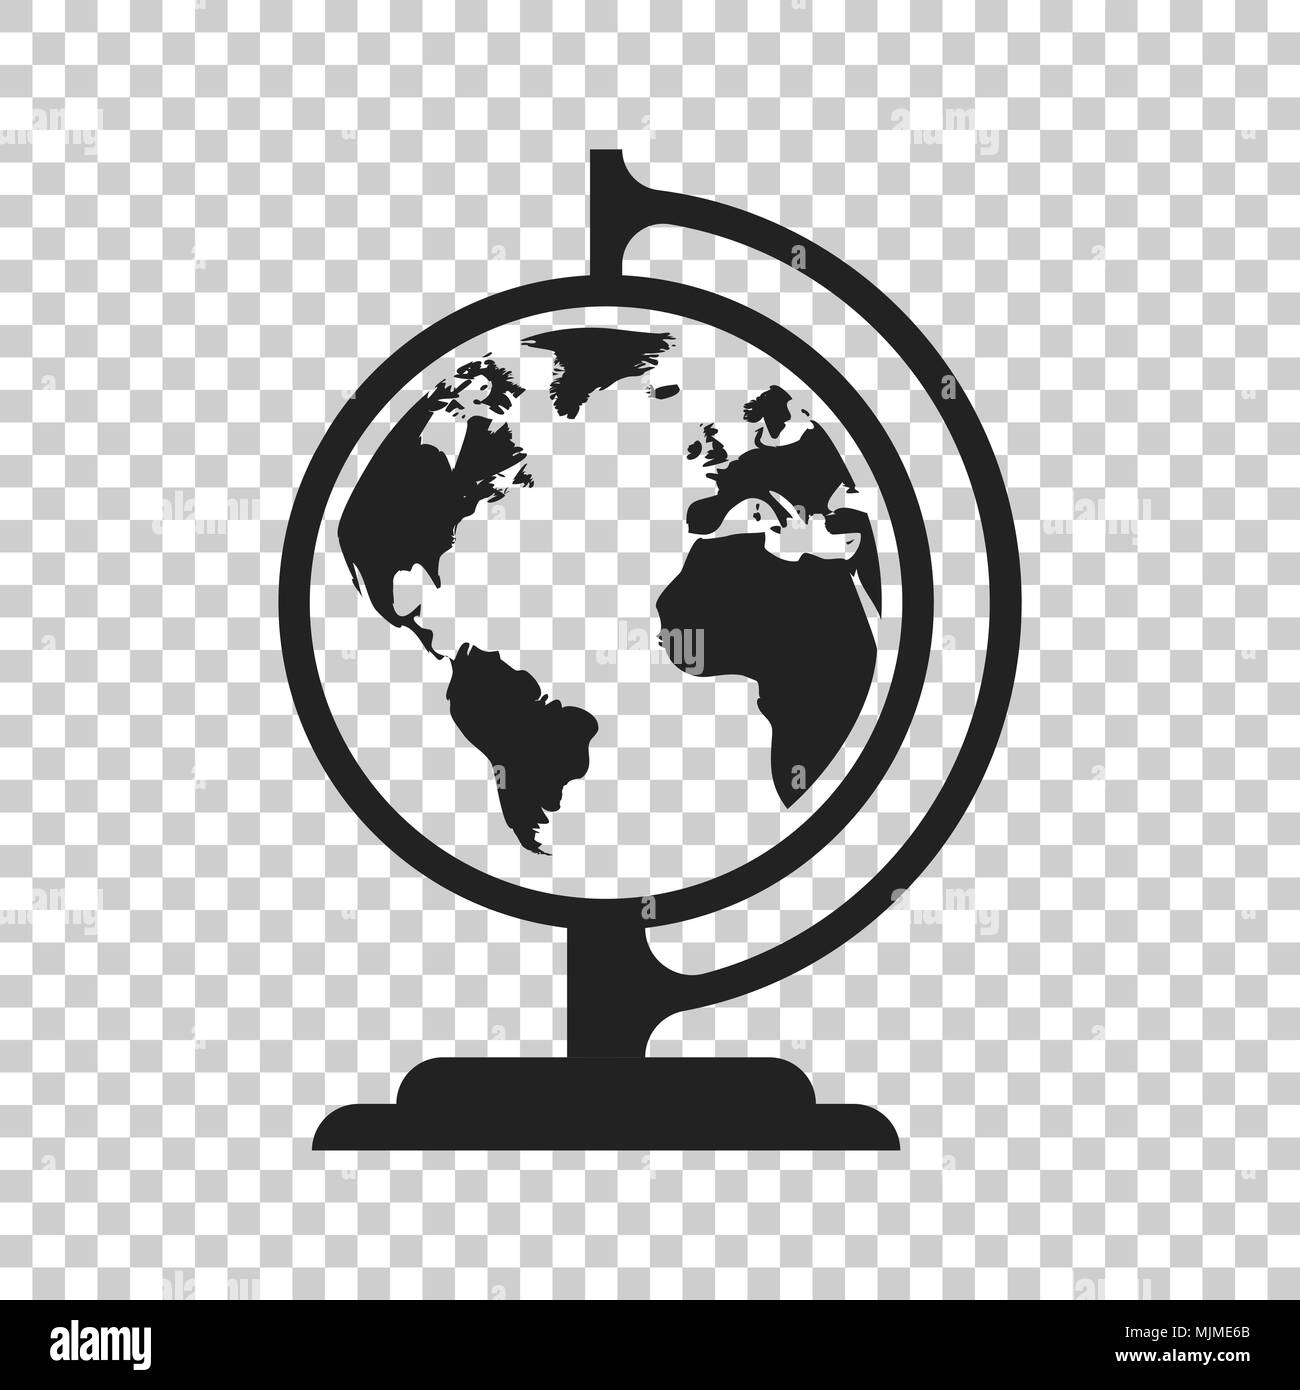 Globe world map vector icon round earth flat vector illustration globe world map vector icon round earth flat vector illustration planet business concept pictogram on isolated transparent background gumiabroncs Images